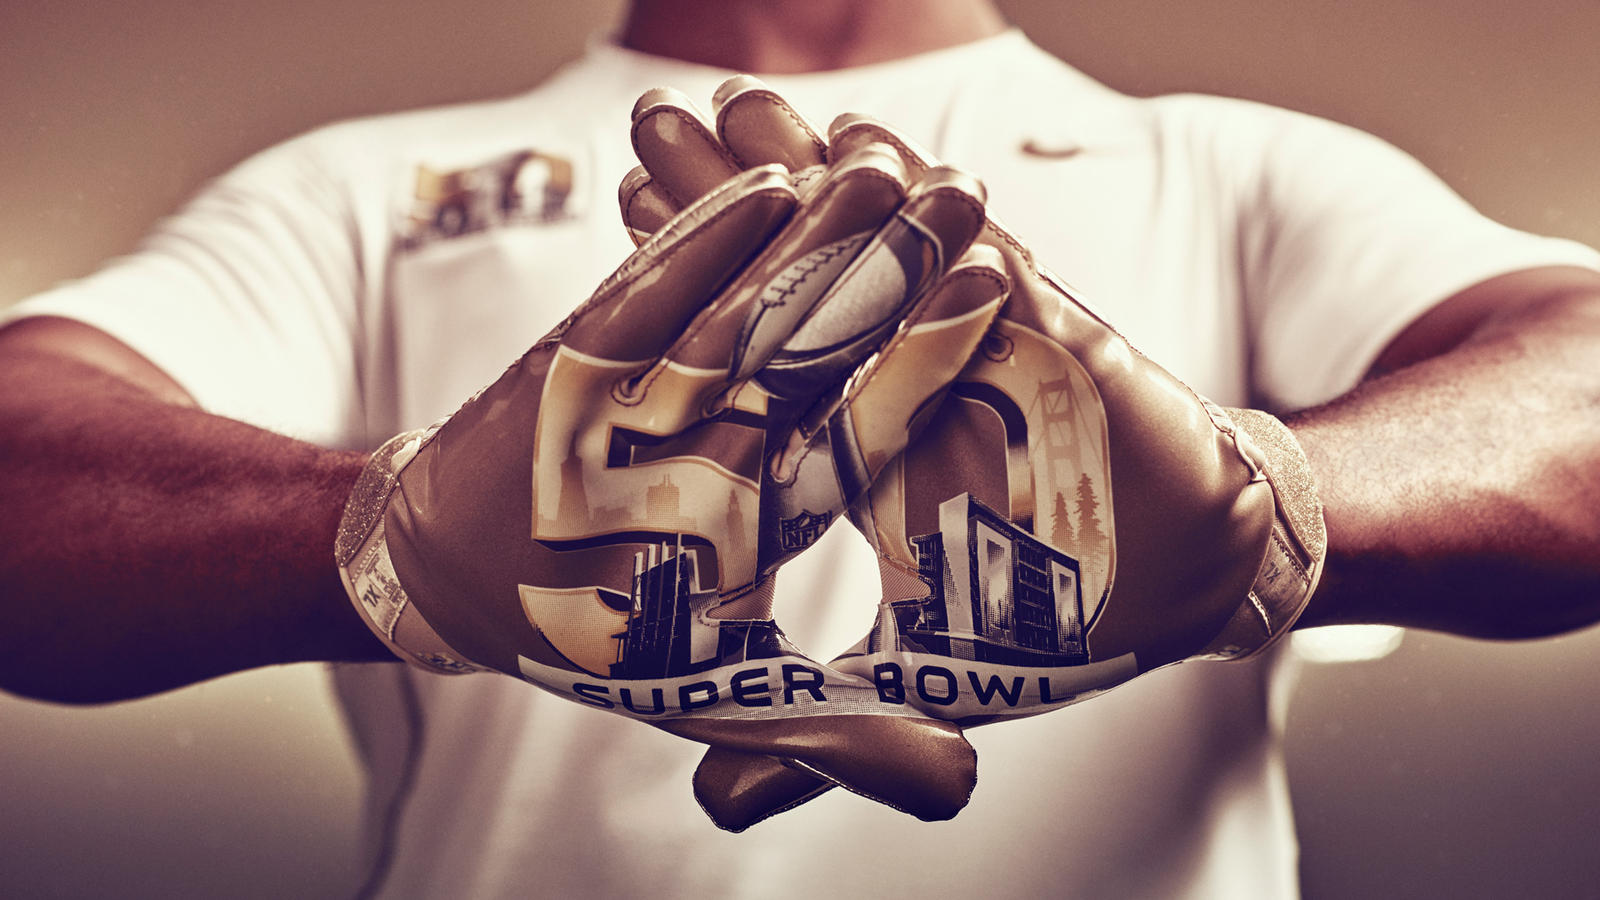 Nike News - Nike Brings Gold to Super Bowl 50